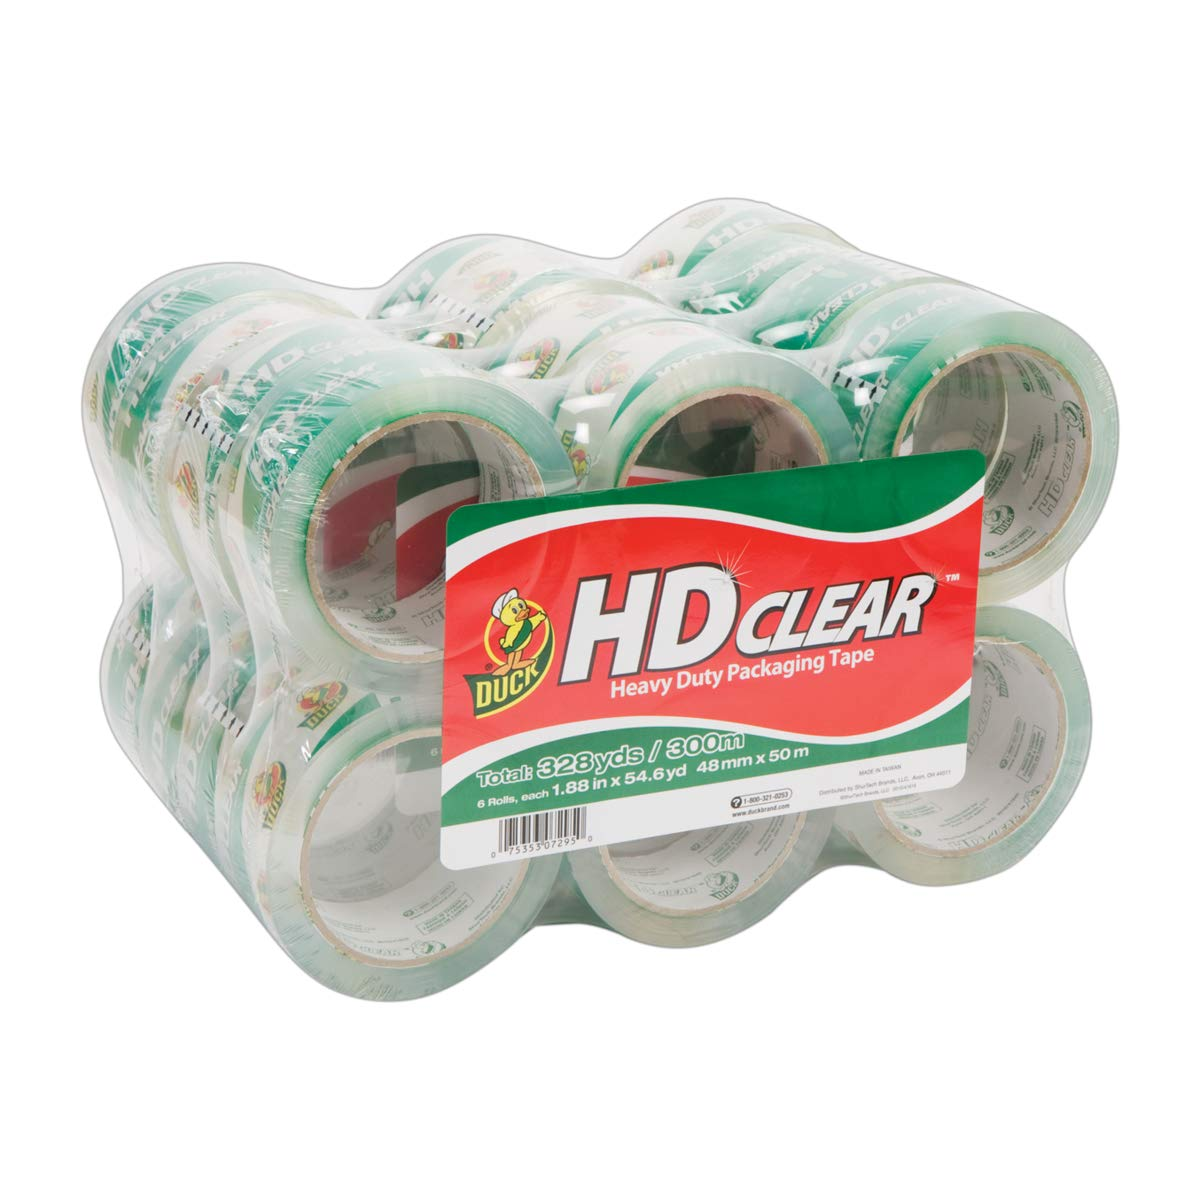 Duck Brand HD Clear Heavy Duty Packaging Tape, 1.88 Inches x 54.6 Yards, Clear, 24 Pack (393730) by Duck